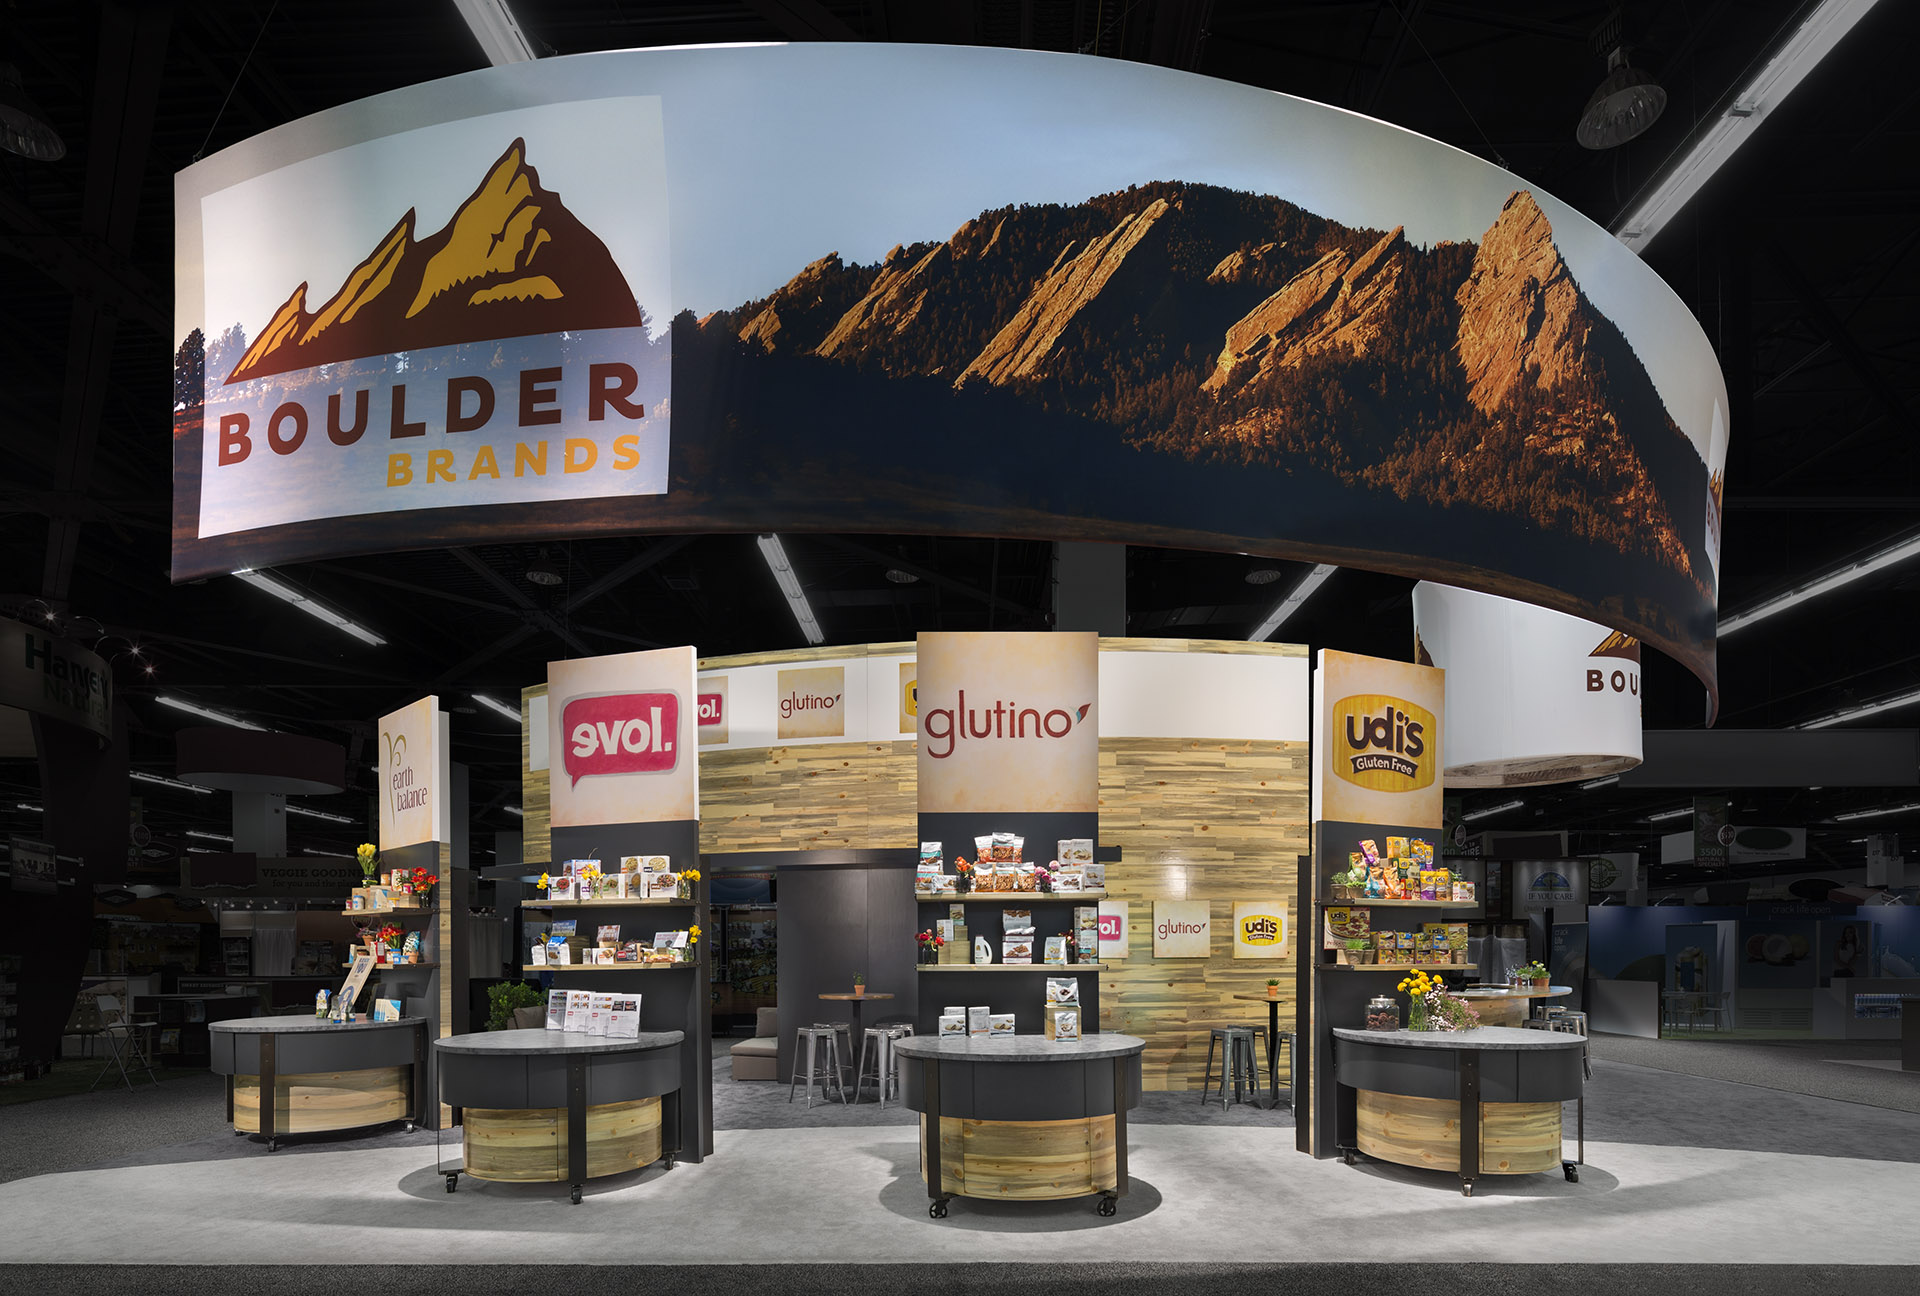 Exhibition Stand Trends 2018 : Tips to design tradeshow displays that wow event attendees